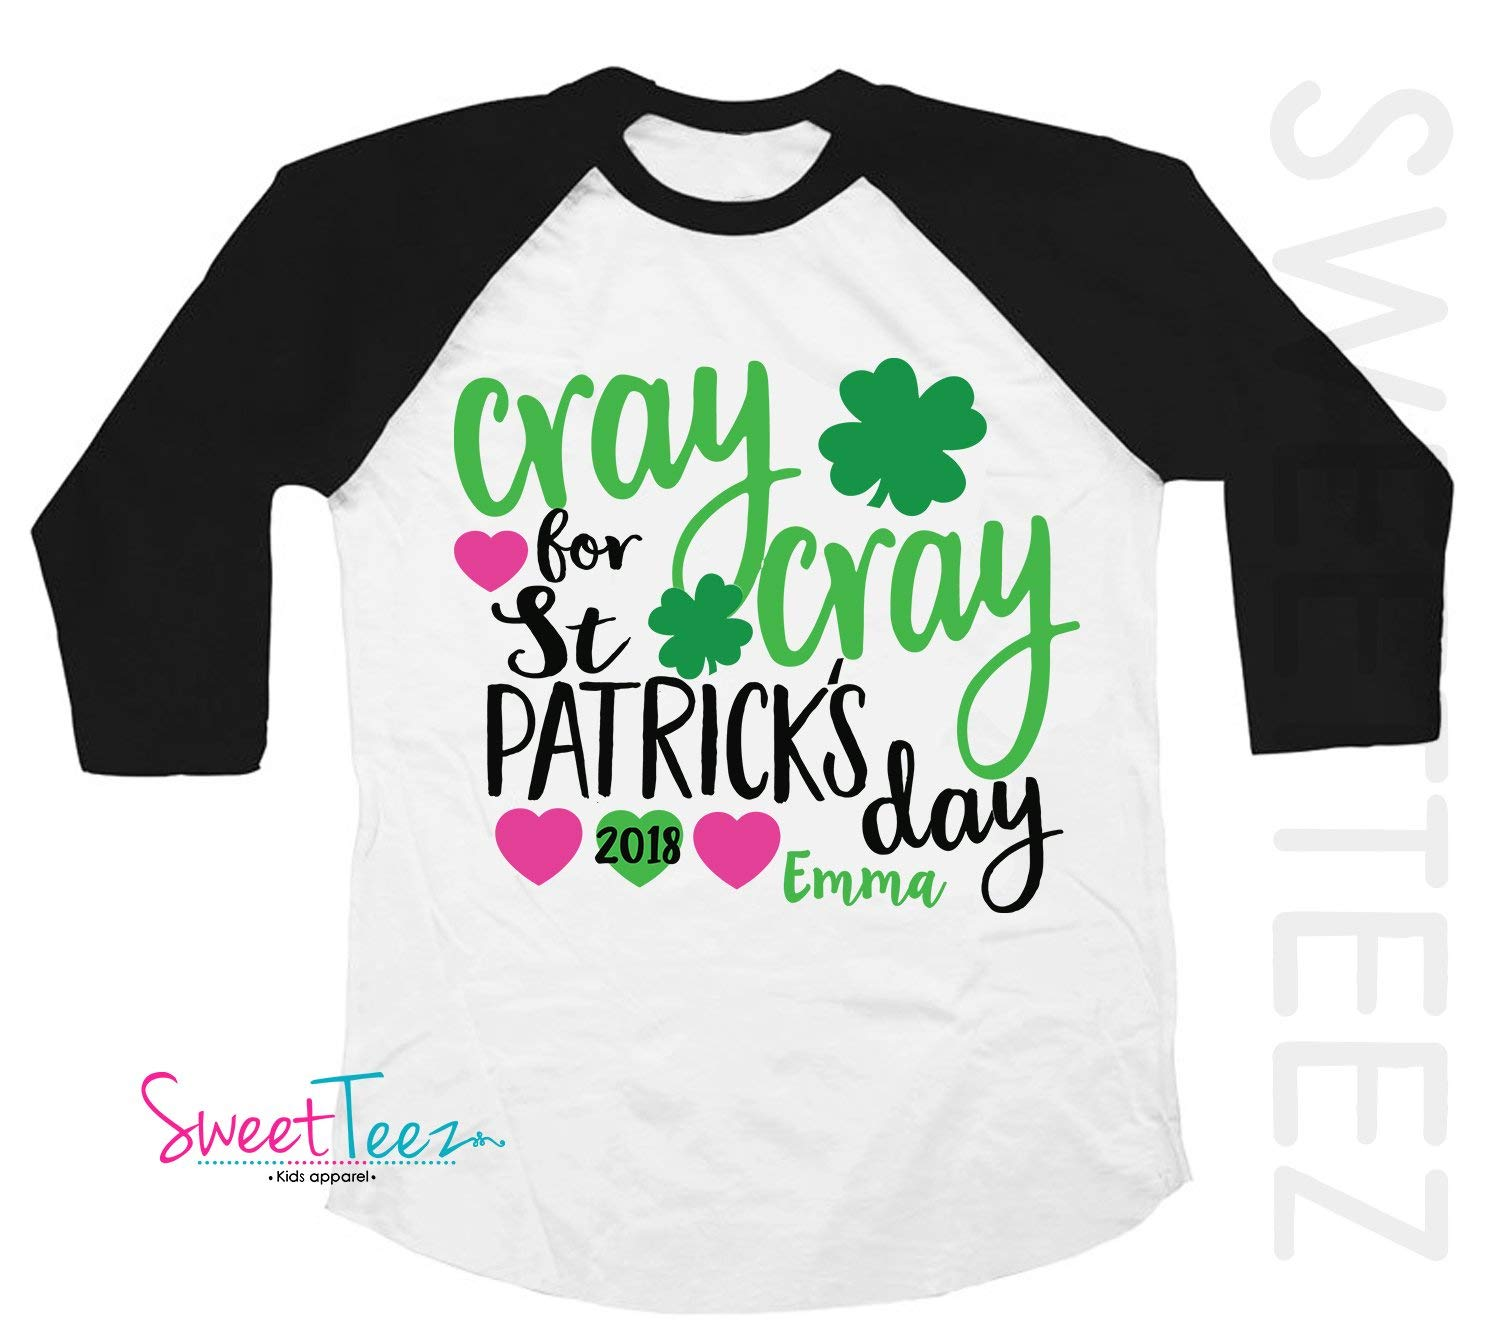 f6fb05472 Get Quotations · Personalized St Patrick's Day Shirt Funny Cray Cray Shamrock  Shirt for a Girl Gift